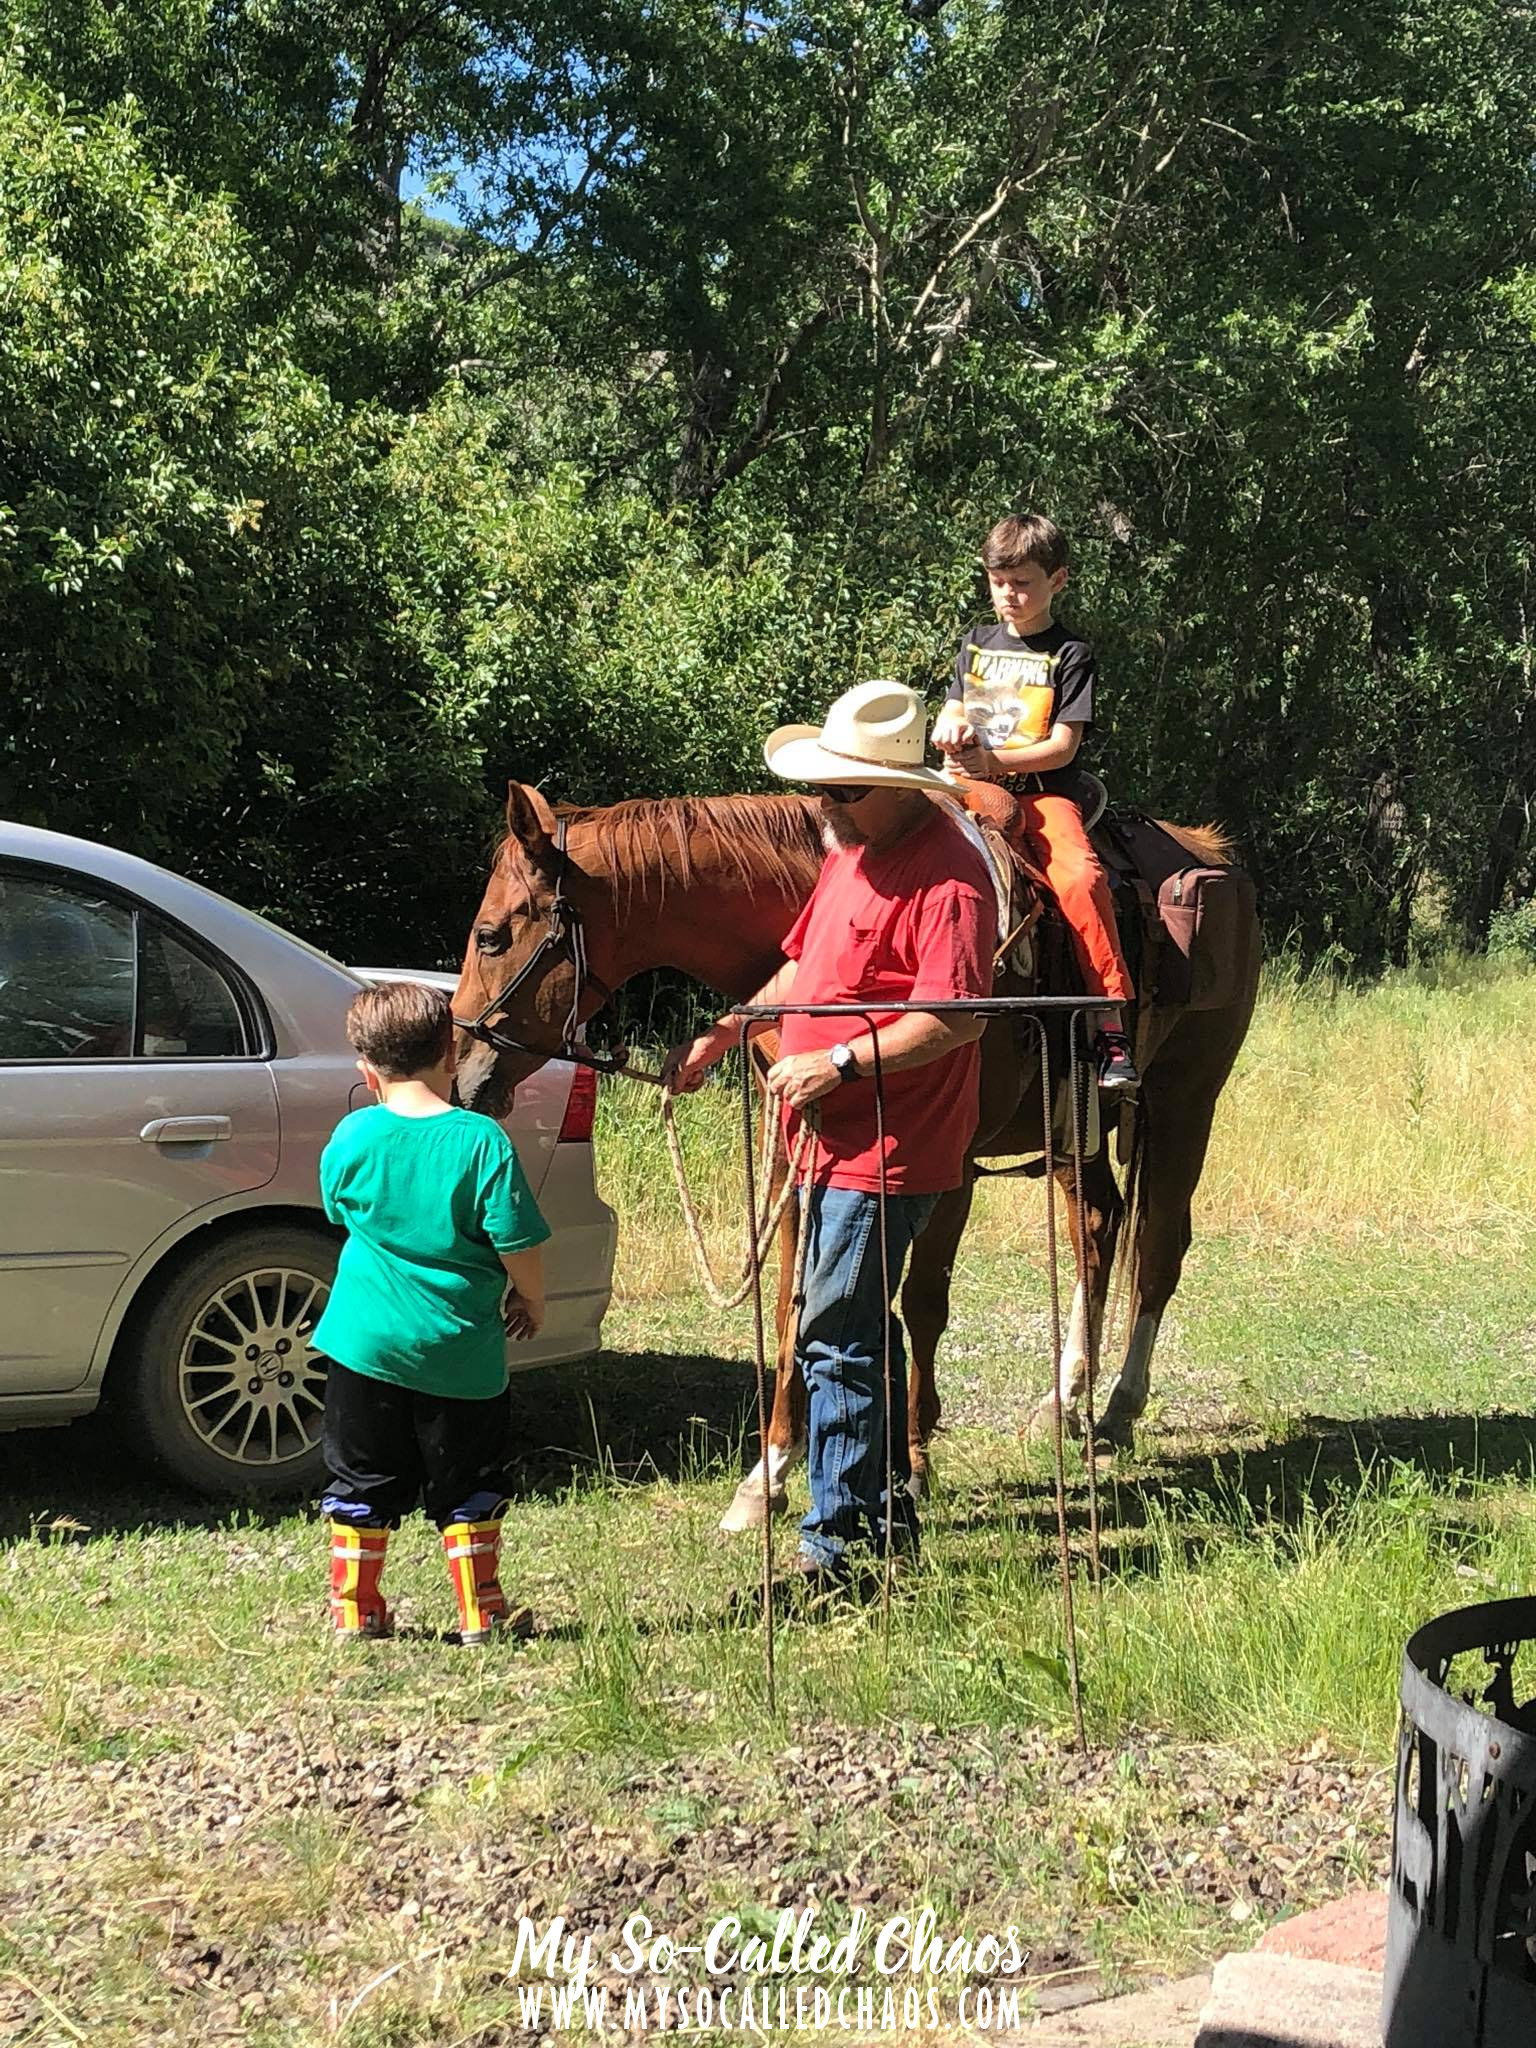 Man in a cowboy hat and red shirt leading a 9 year old boy in orange jeans around on a tall brown horse while a 5 year old boy in a green shirt pets the horse.